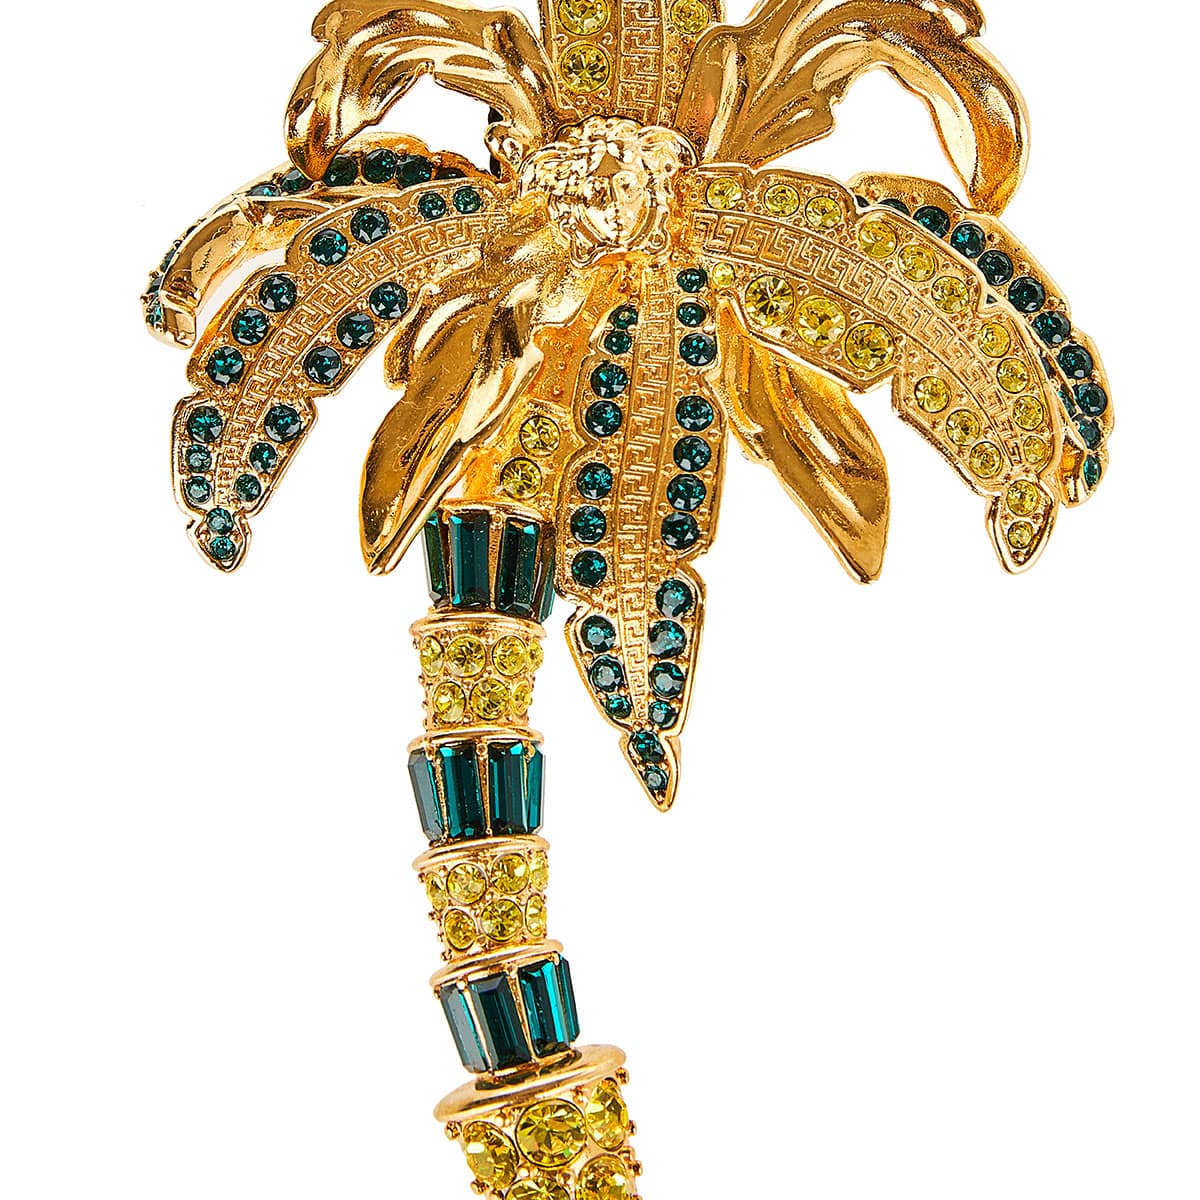 Crystal-embellished palm tree brooch